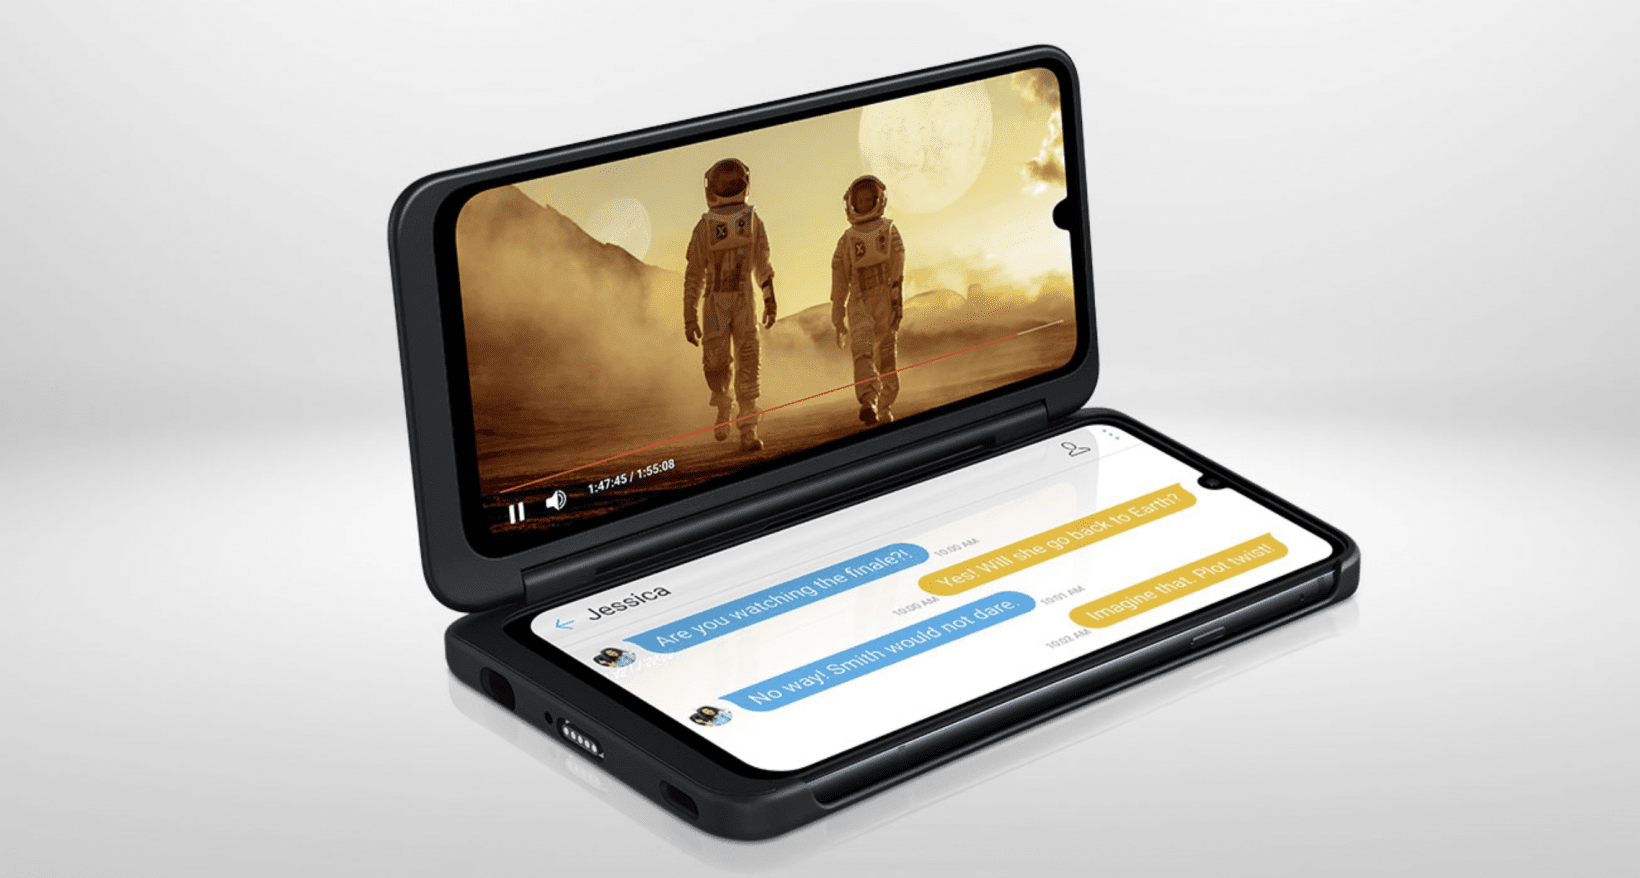 LG's second screen case